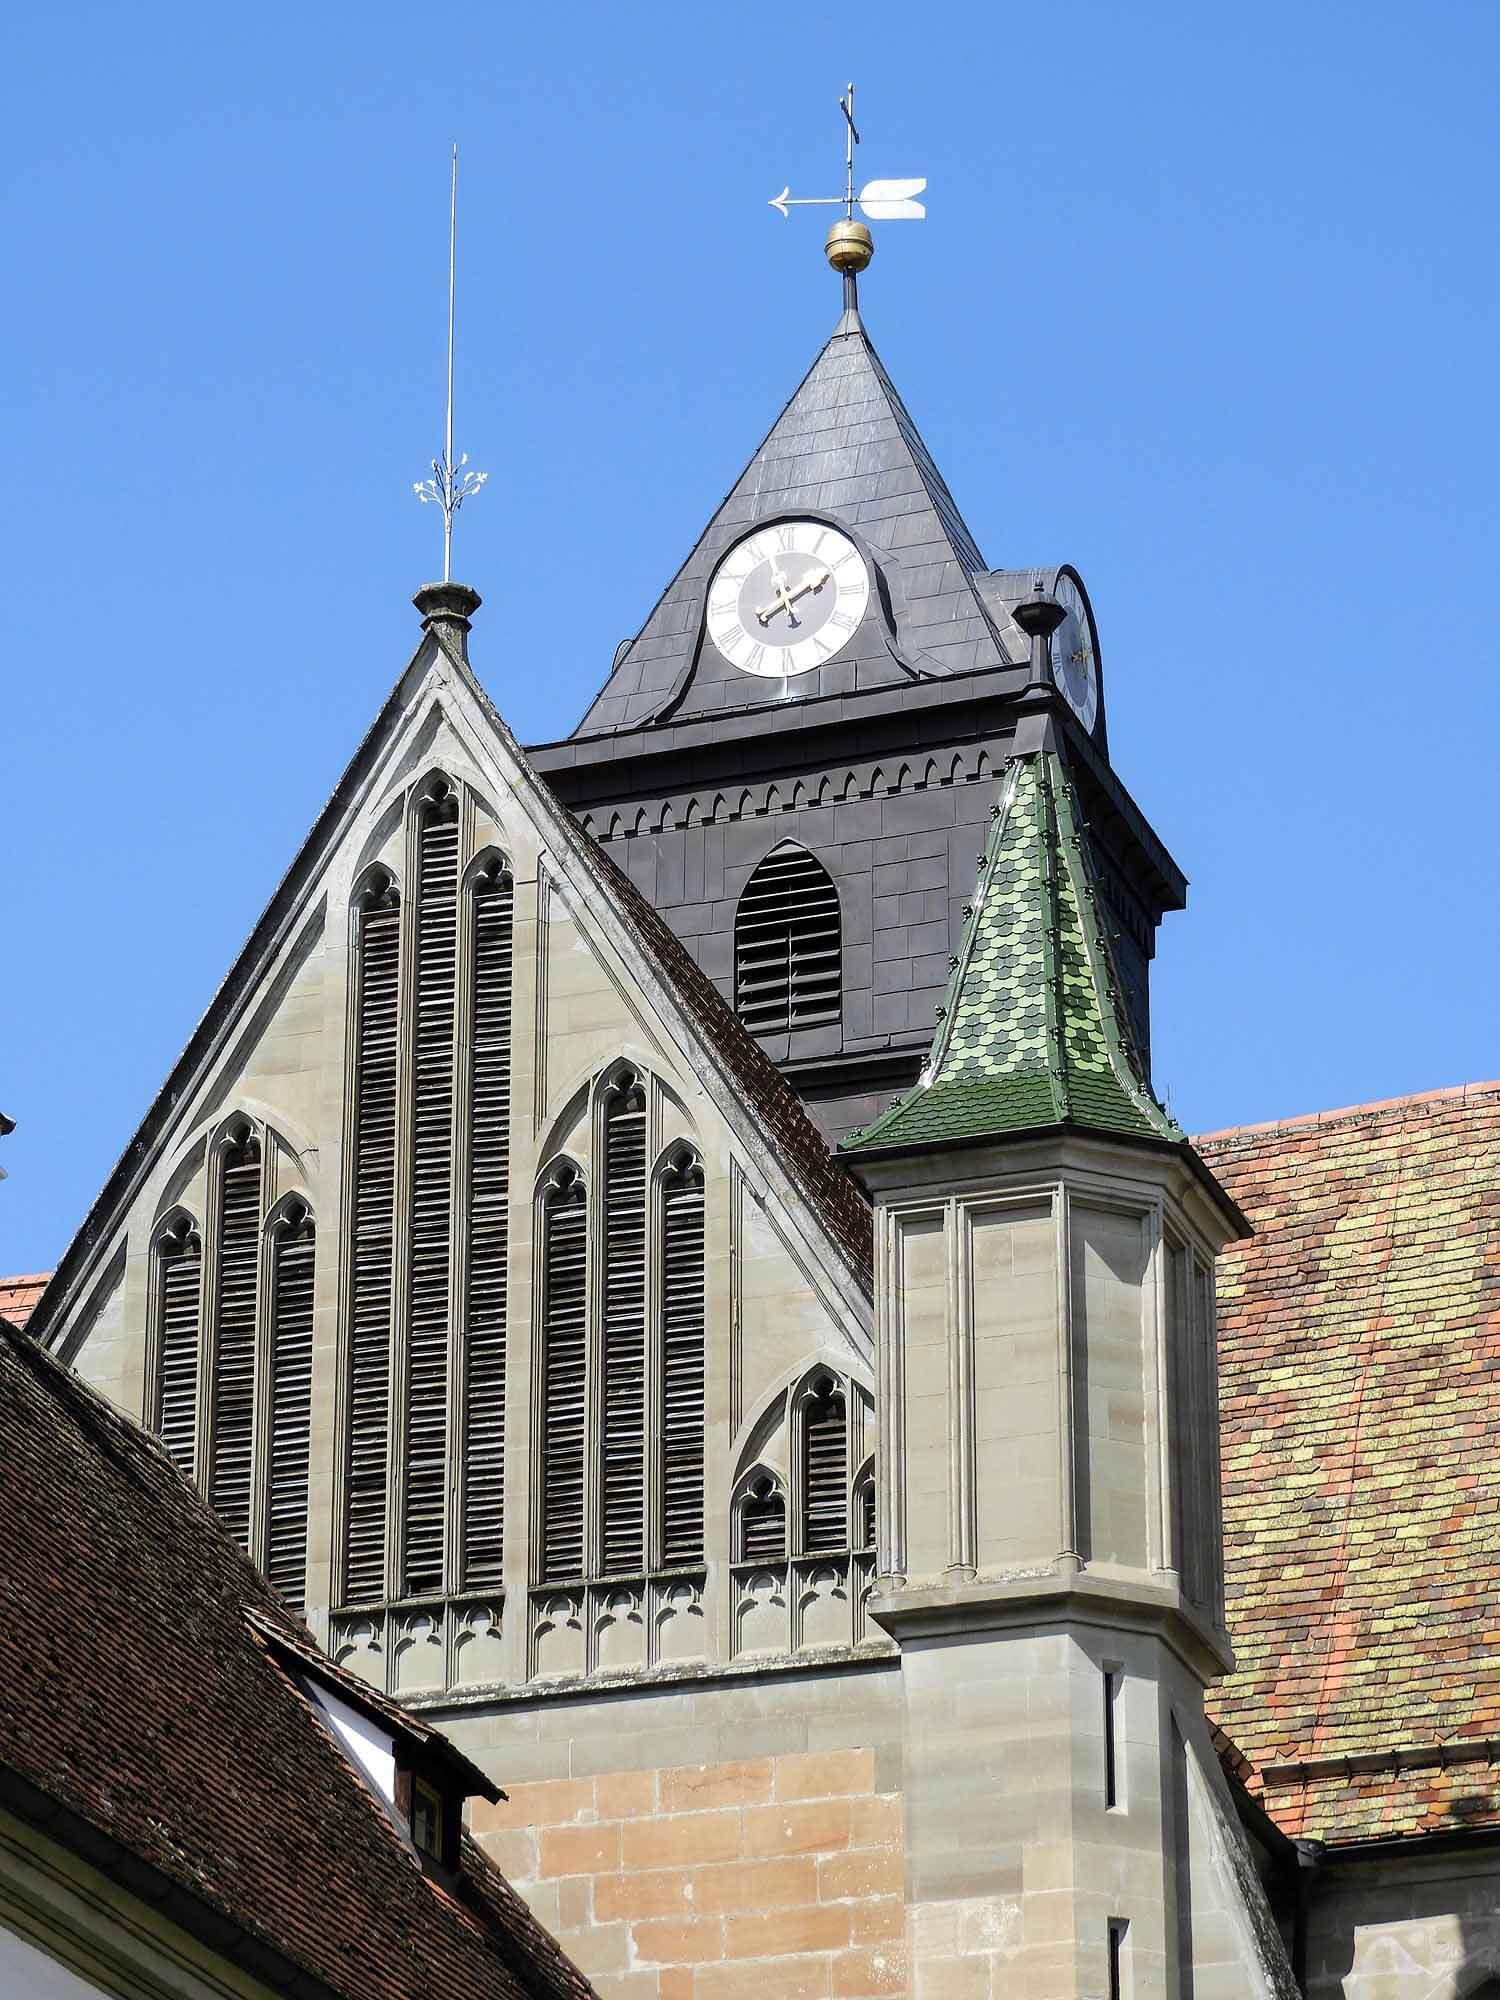 germany-salem-monastery-clock-tower.jpg